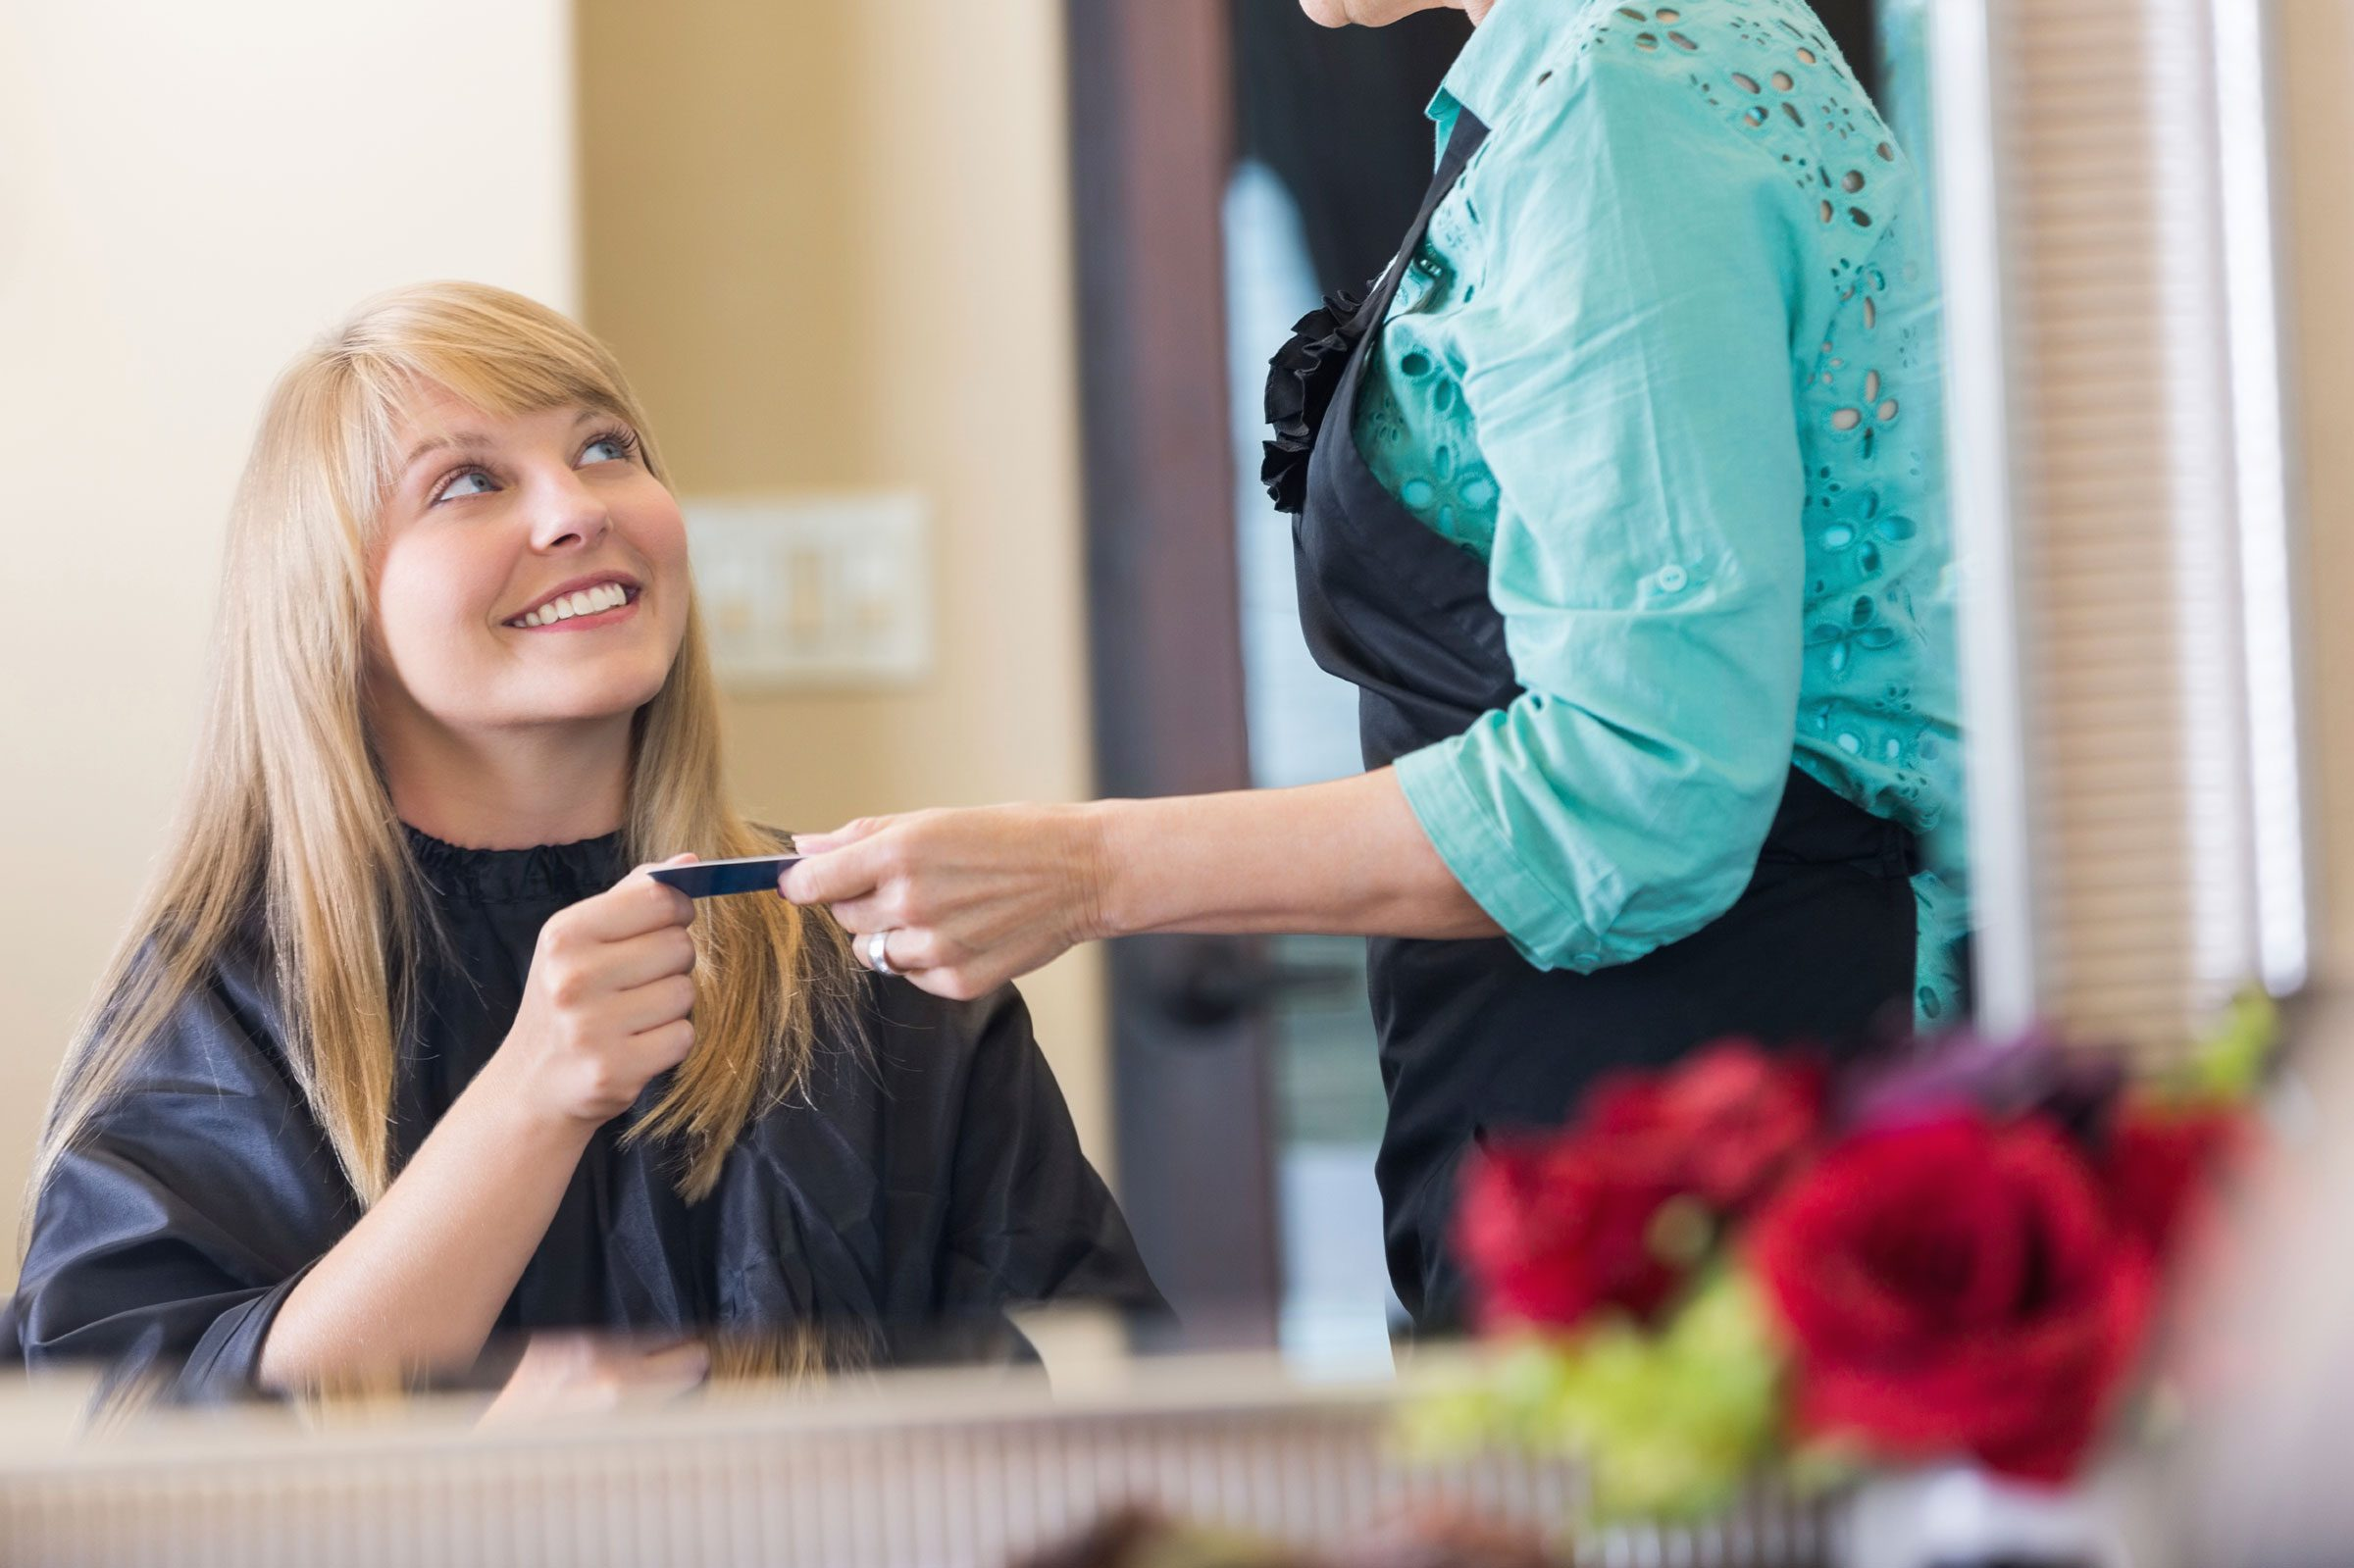 For stylists, tips should be 15 to 20 percent of the total cost of your bill.